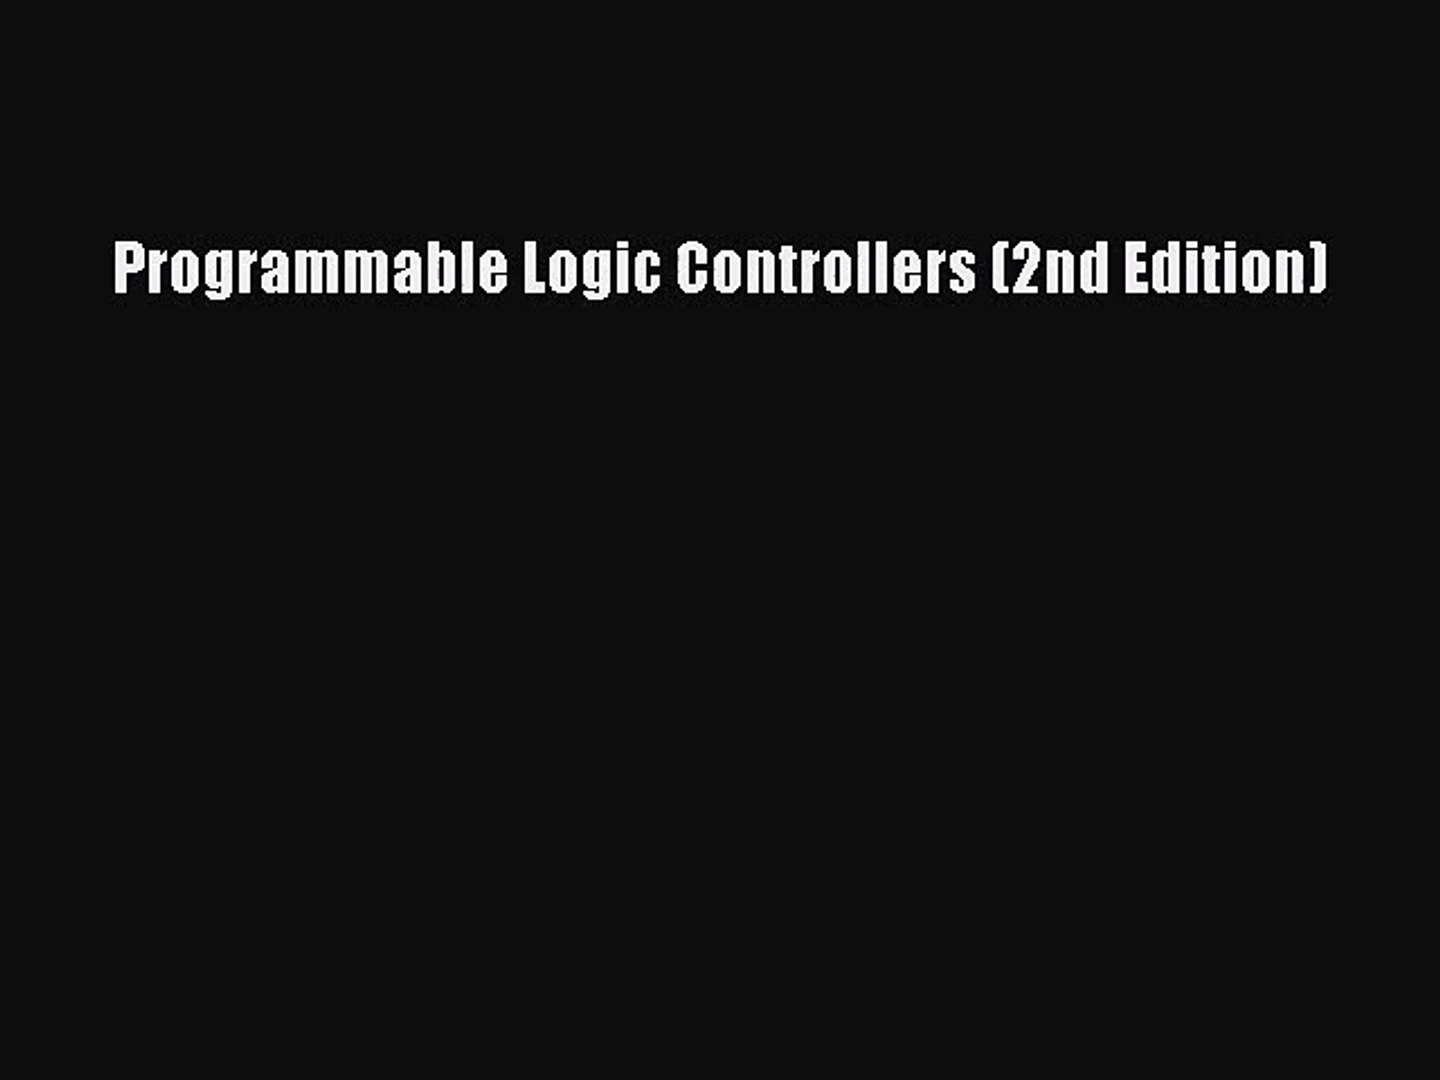 Programmable Logic Controllers 2nd Edition